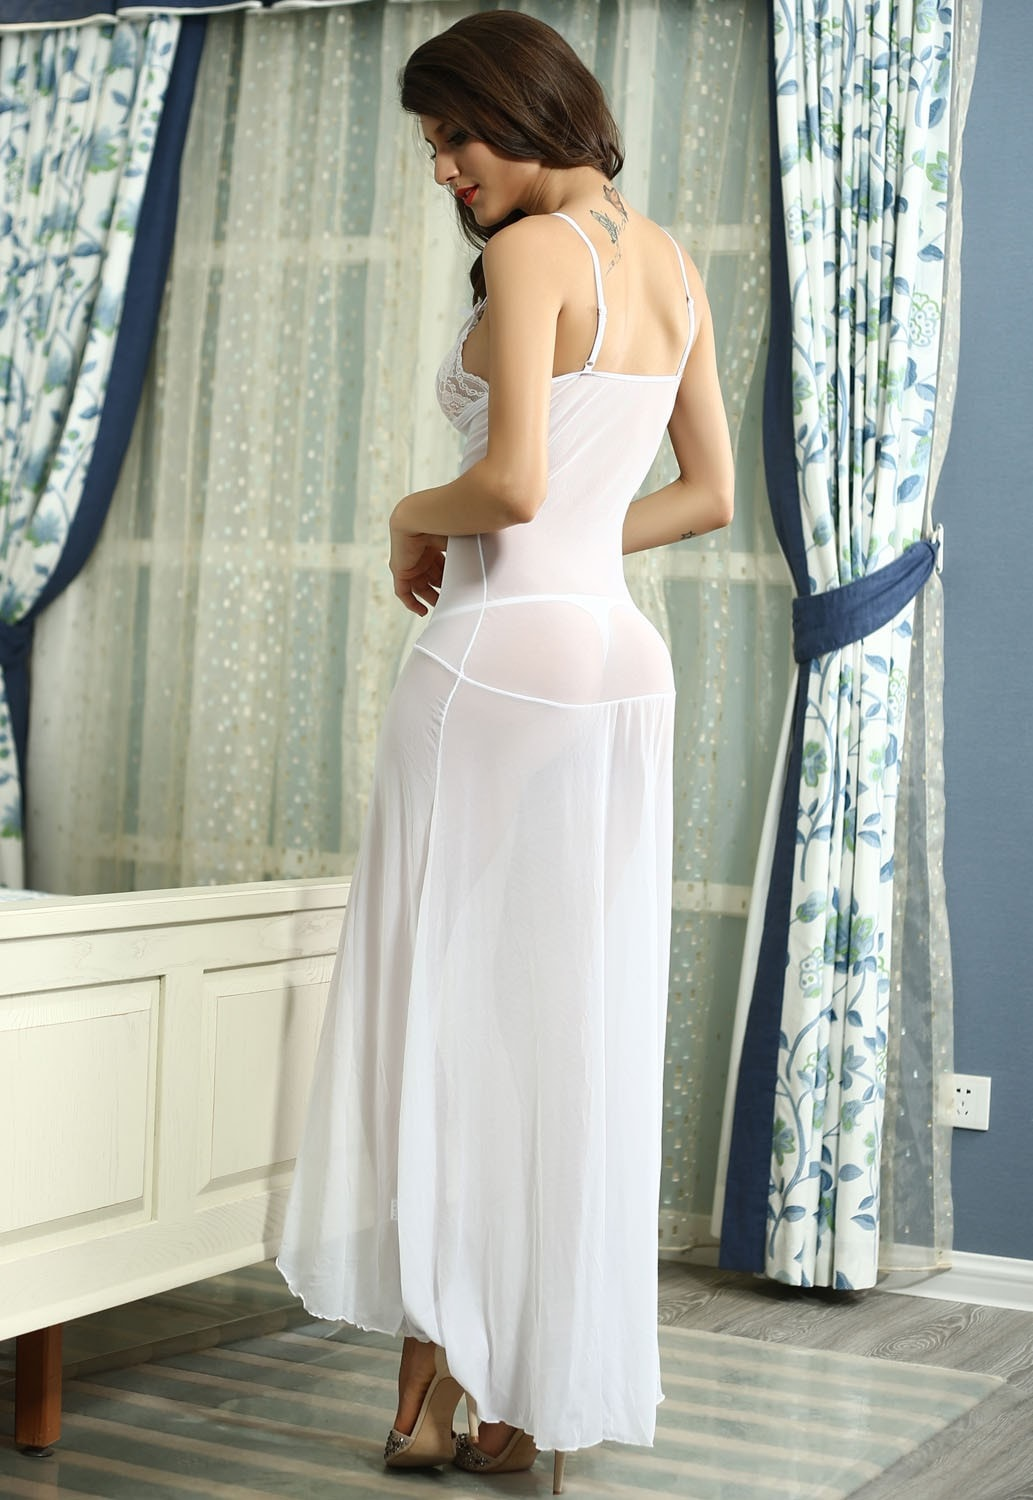 Sexy Long White Bride Sleepwear Gown  Edealretail-7789